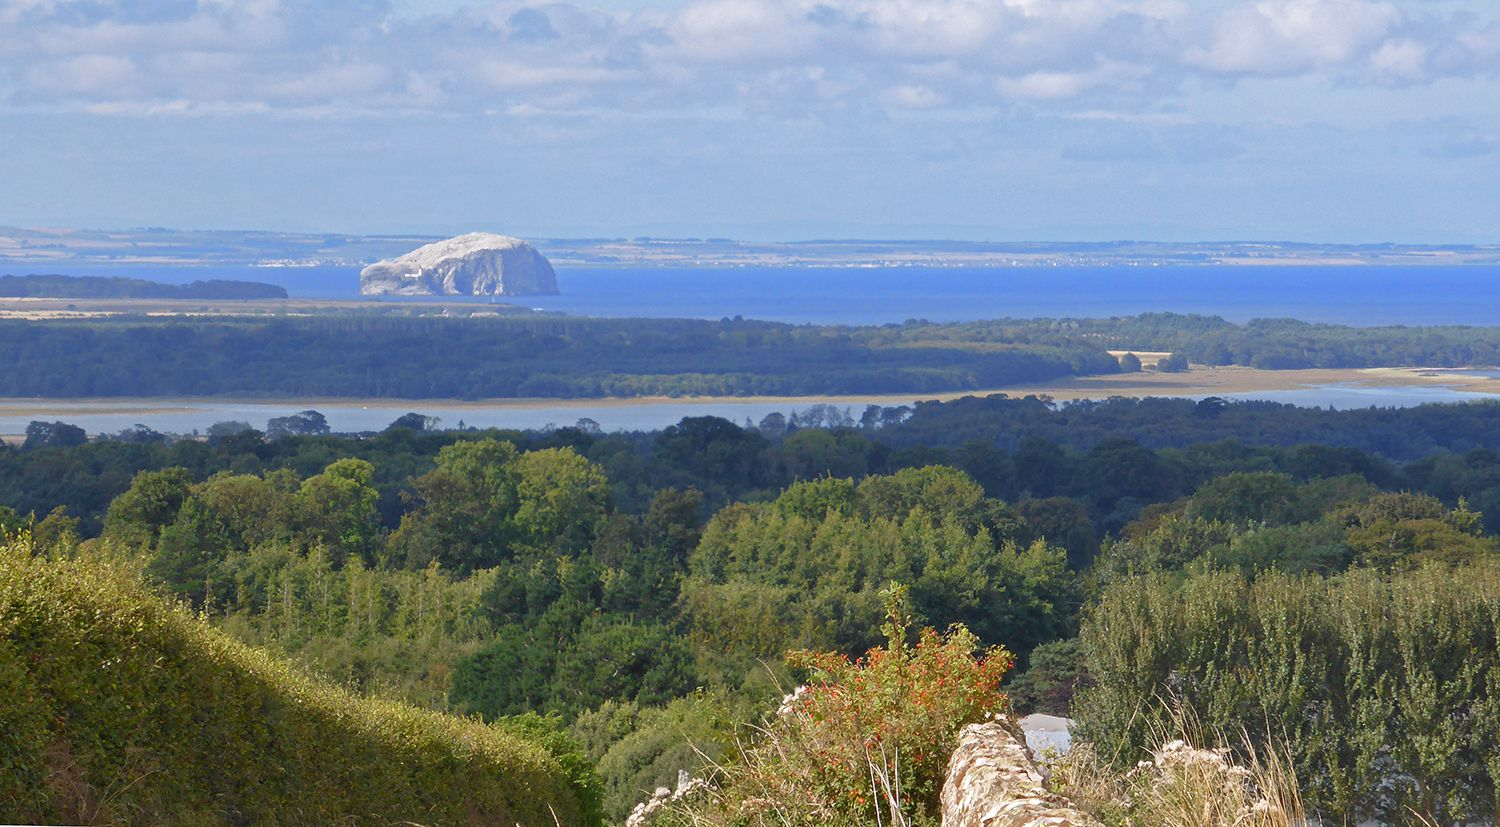 Looking down to The Firth of Forth above Dunbar with Tyninghame Bay, the Bass Rock and the coastline of The Kingdom of Fife in the far distance